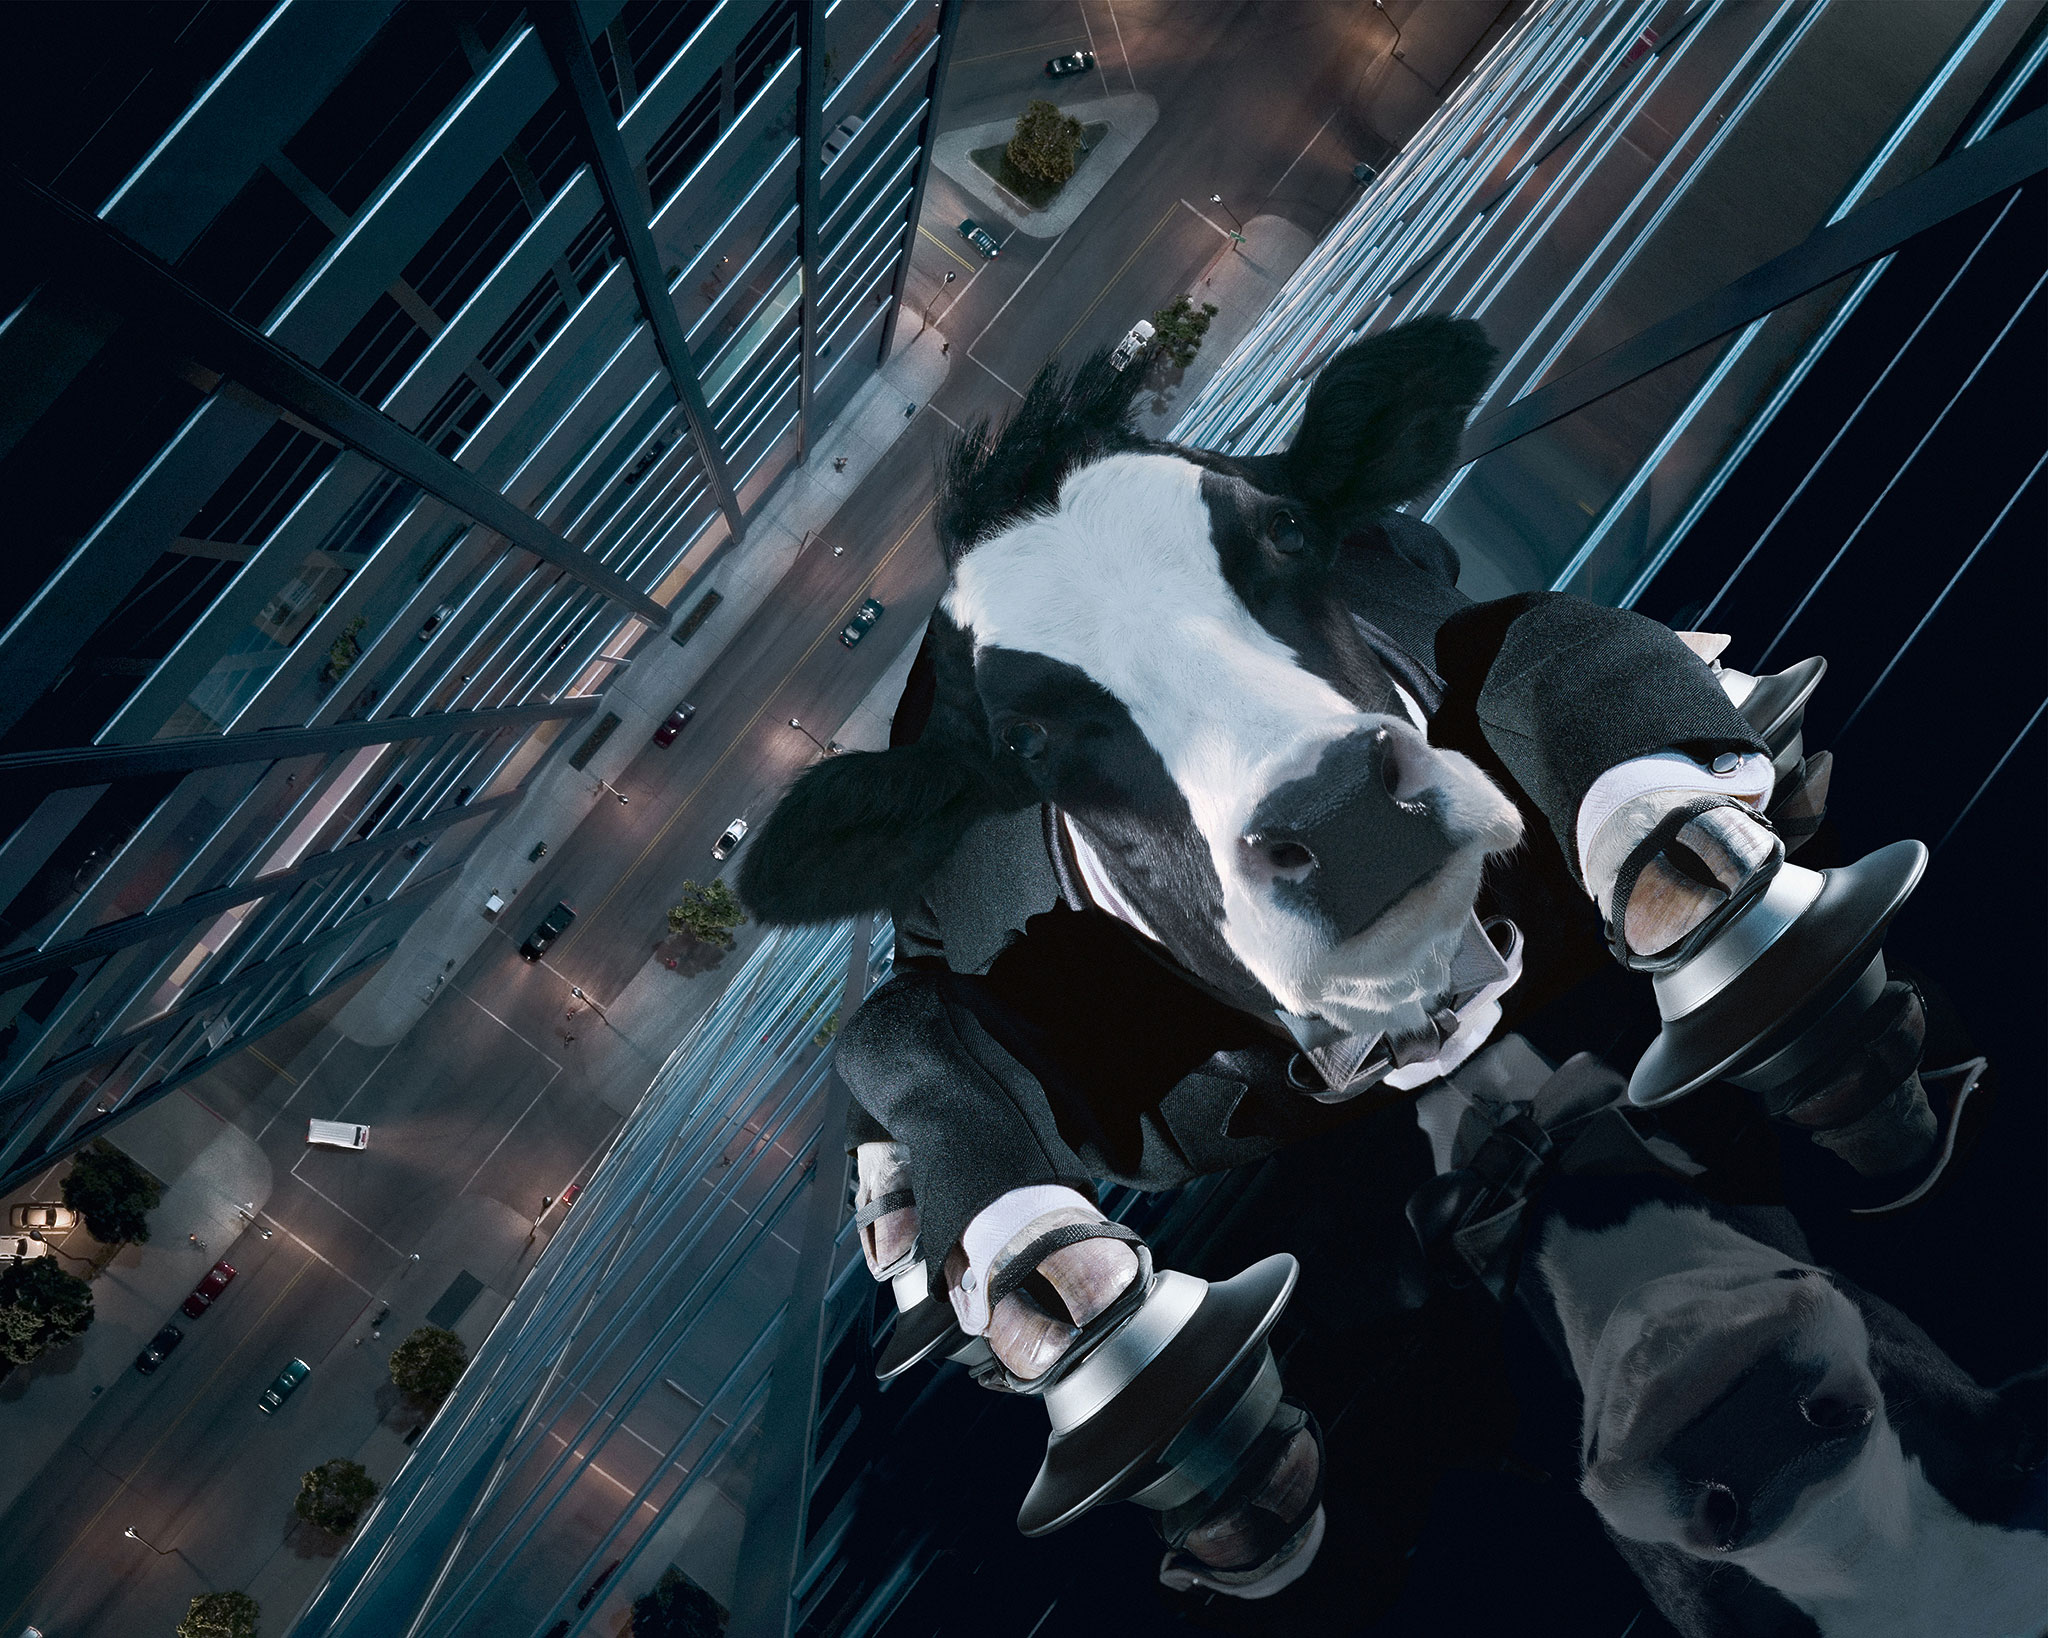 Secret Agent Cows | cow climbing high rise building |  Glen Wexler | Advertising Photographer